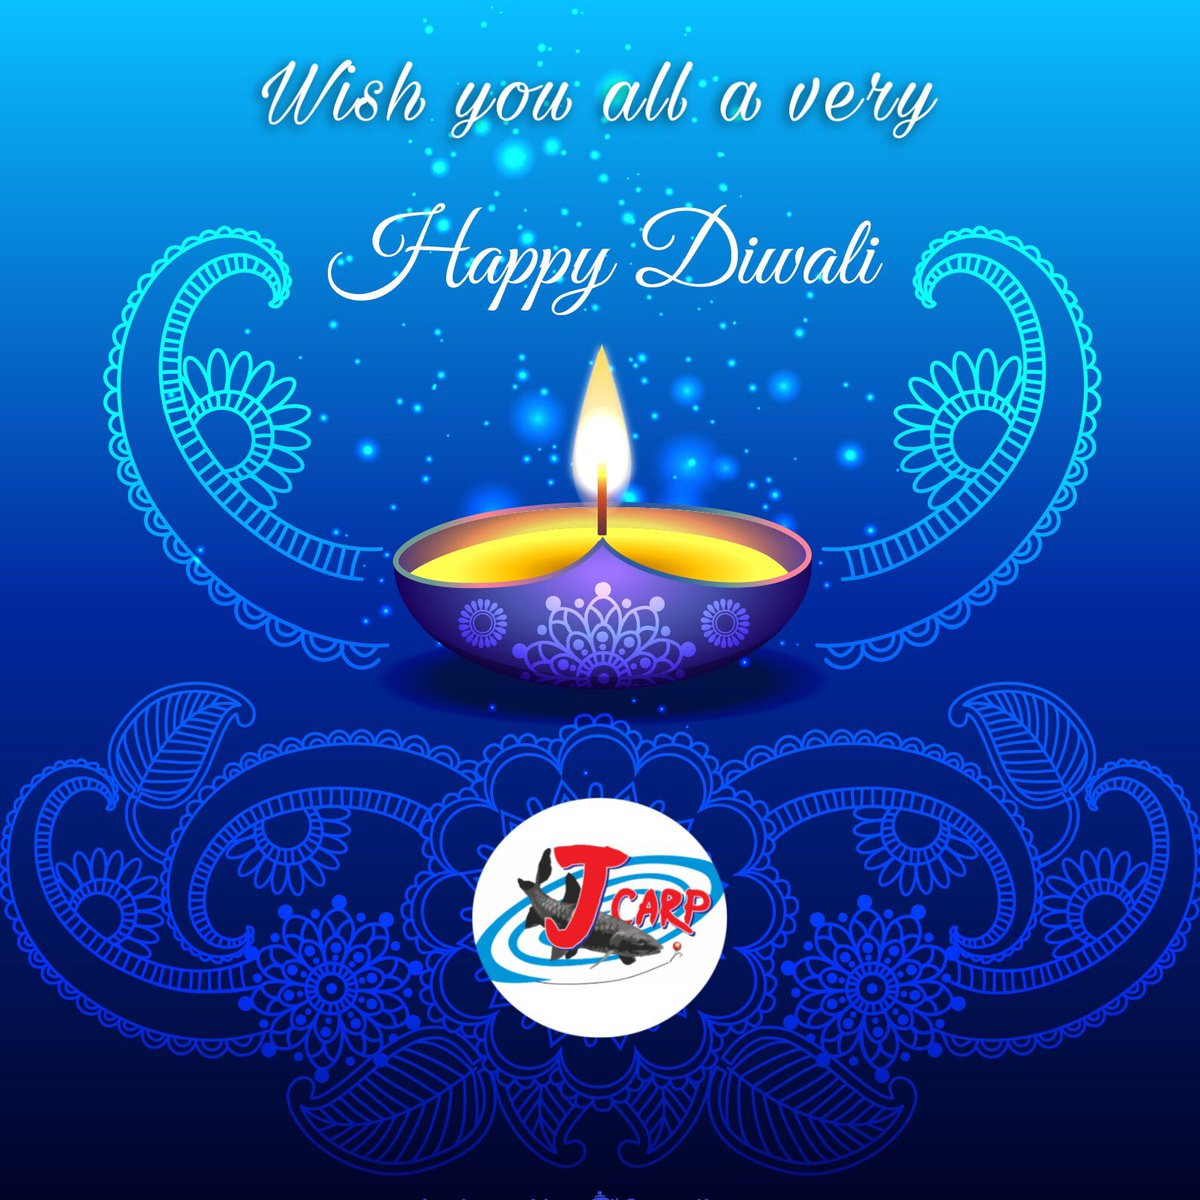 Happy diwali ! #jcarp #carpfishing #fishinglife #diwali #catla #rohu #<b>Popup</b>rig https://t.co/x